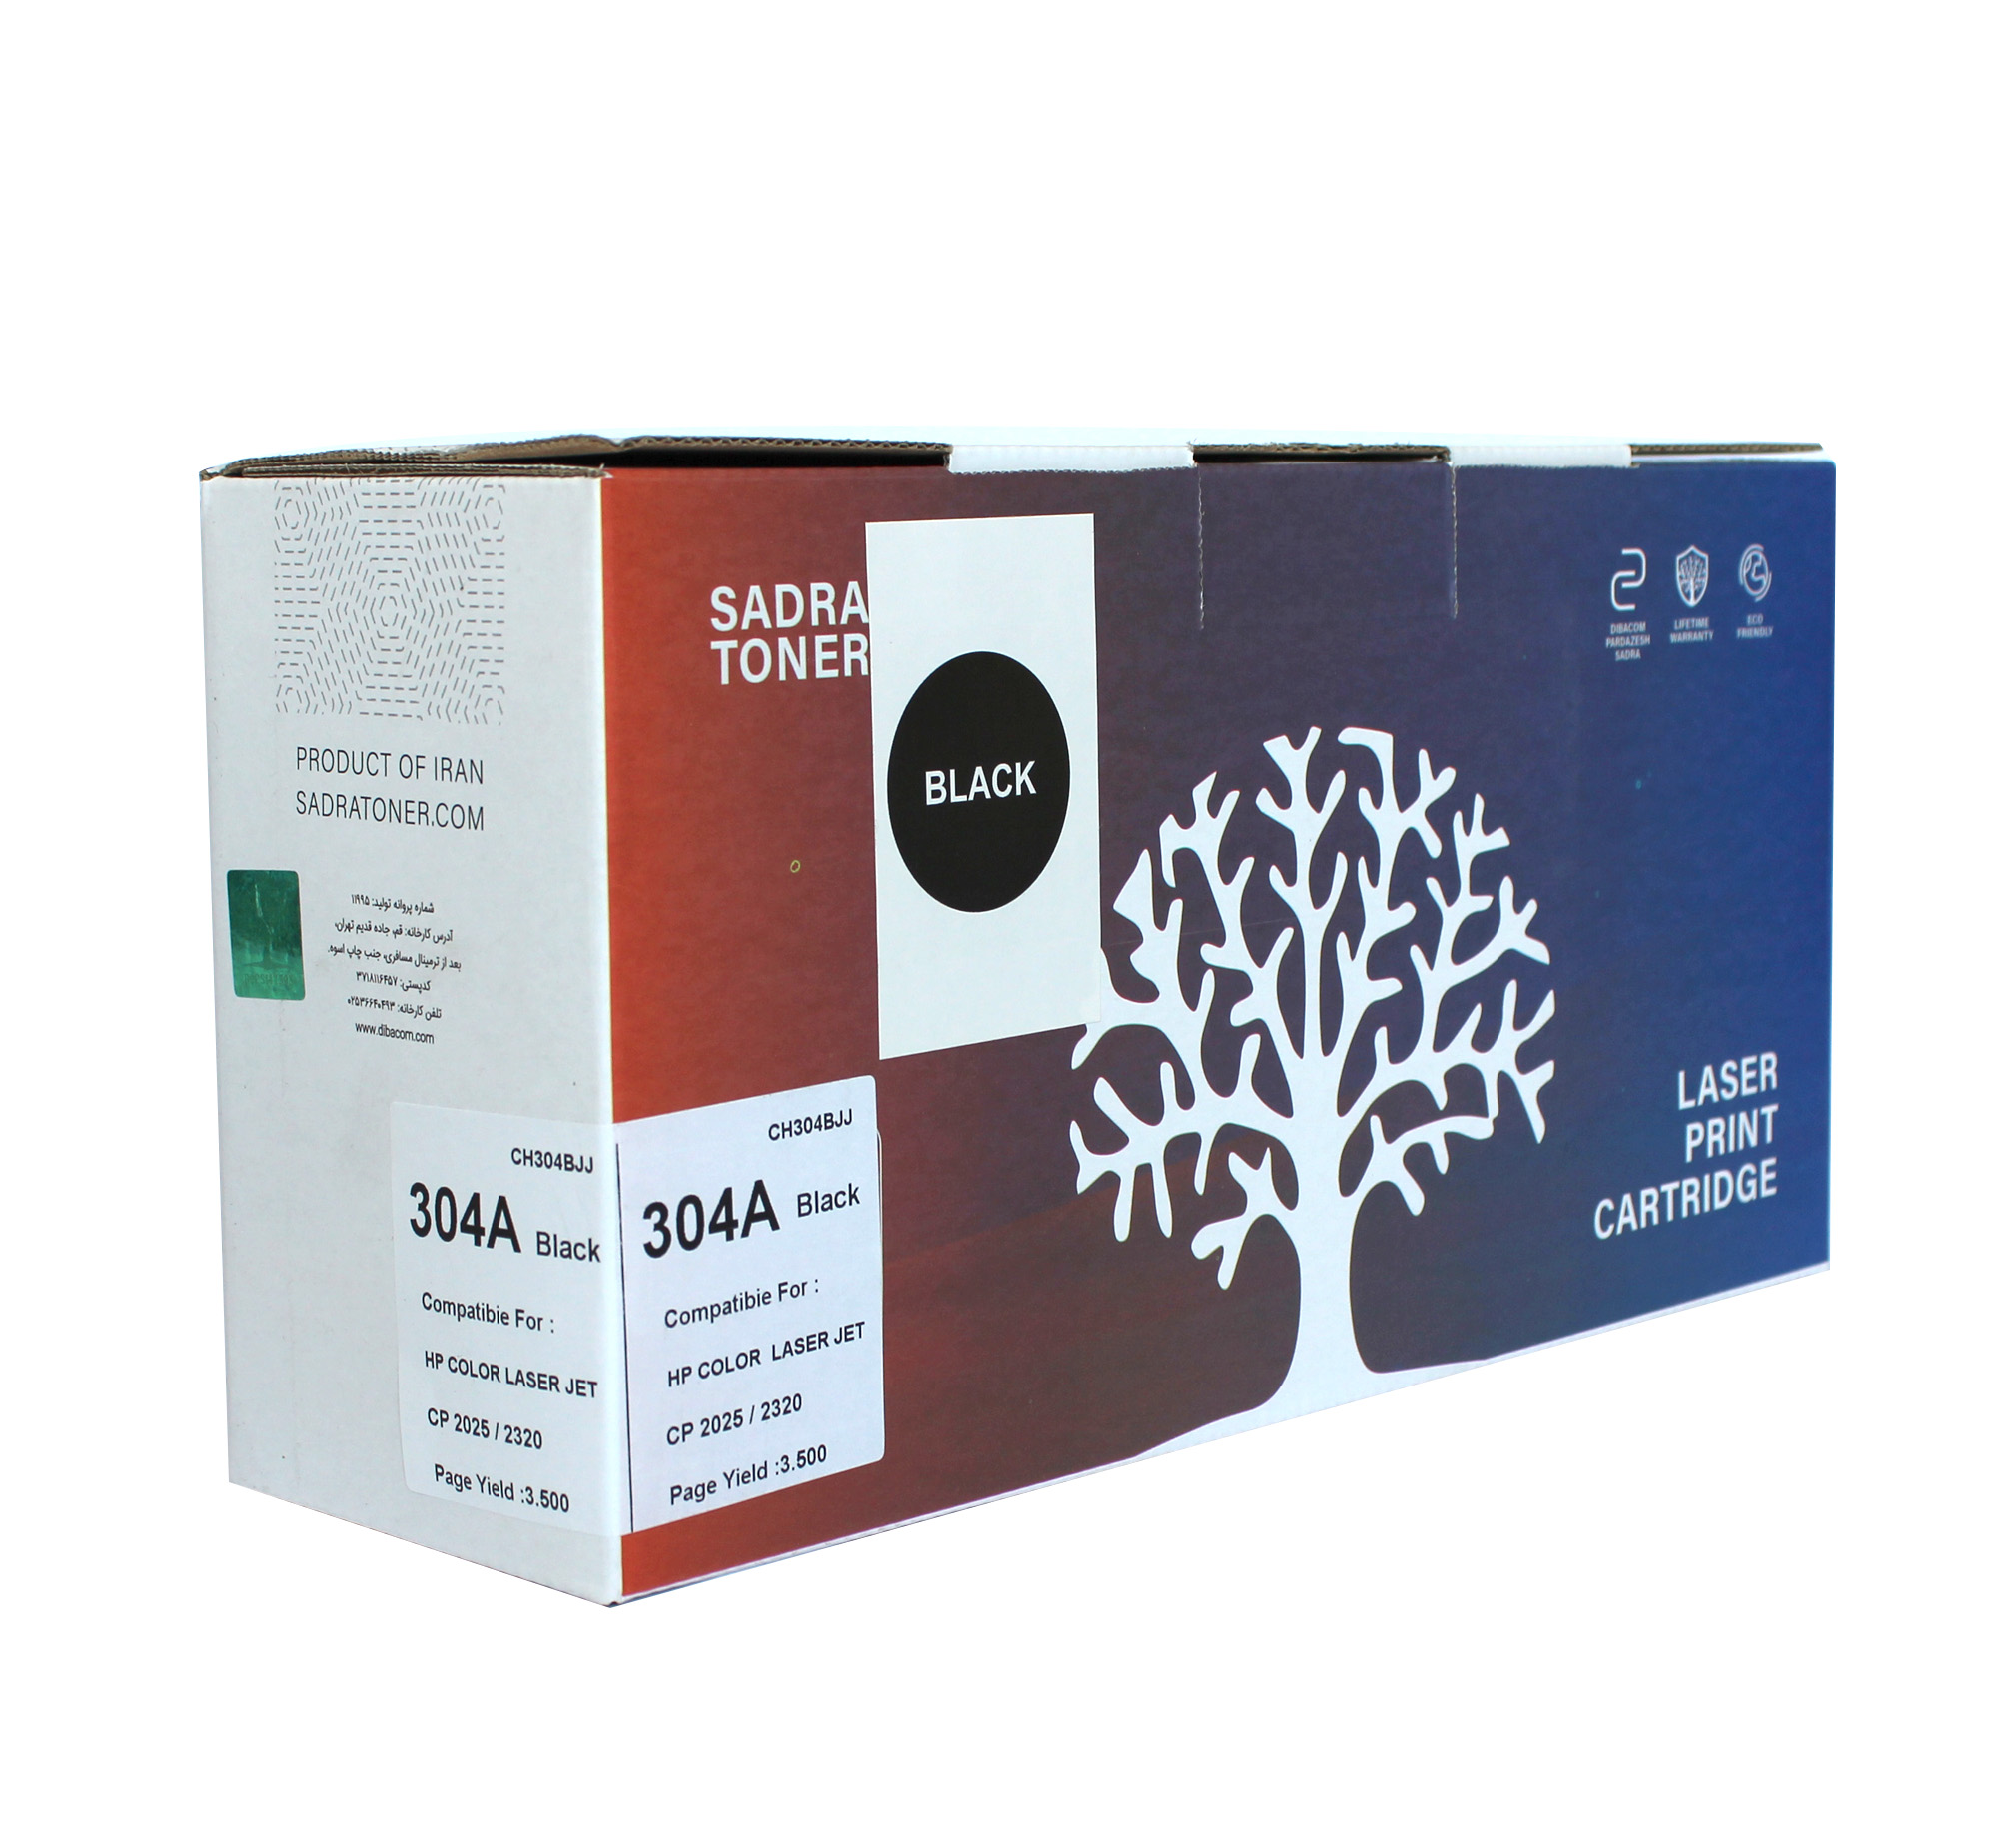 Sadra Laser Cartridge 304 hp